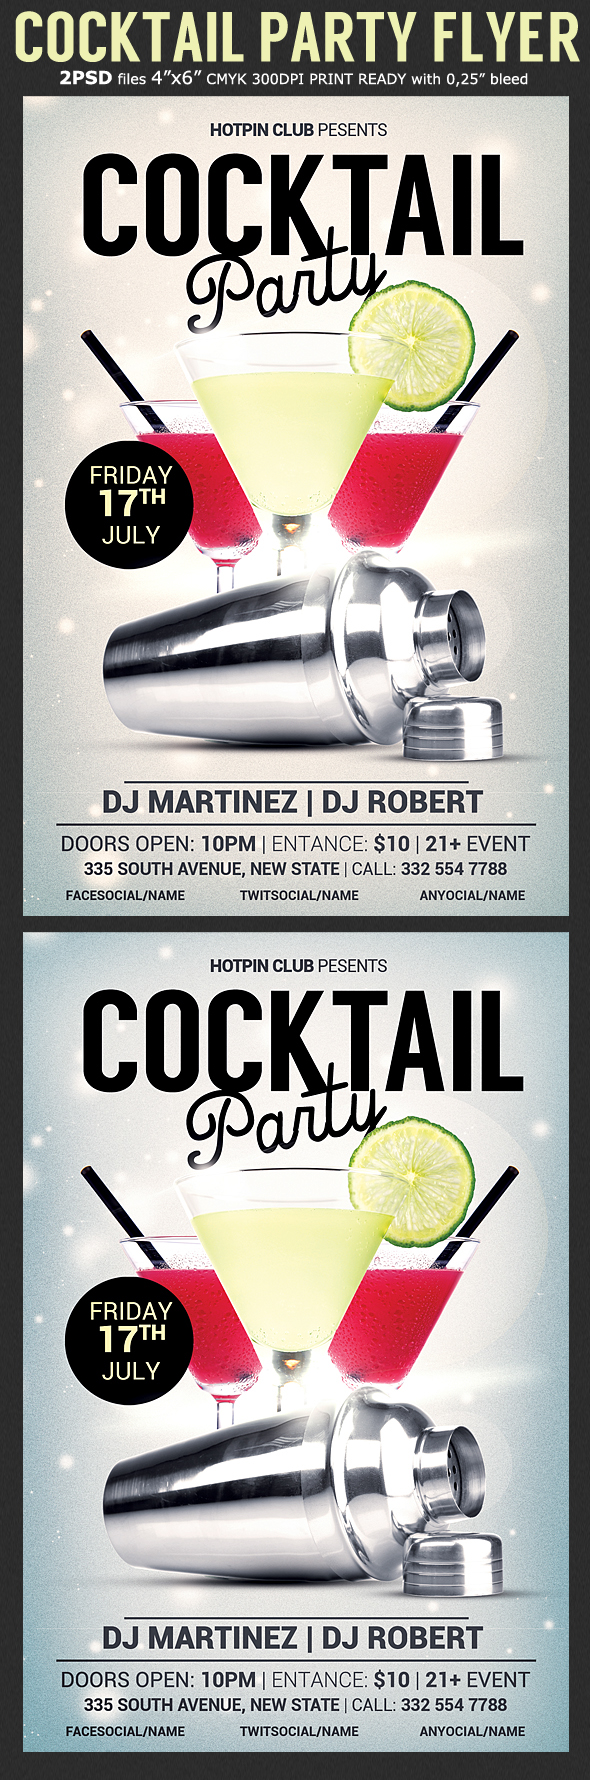 cocktail party flyer template on behance